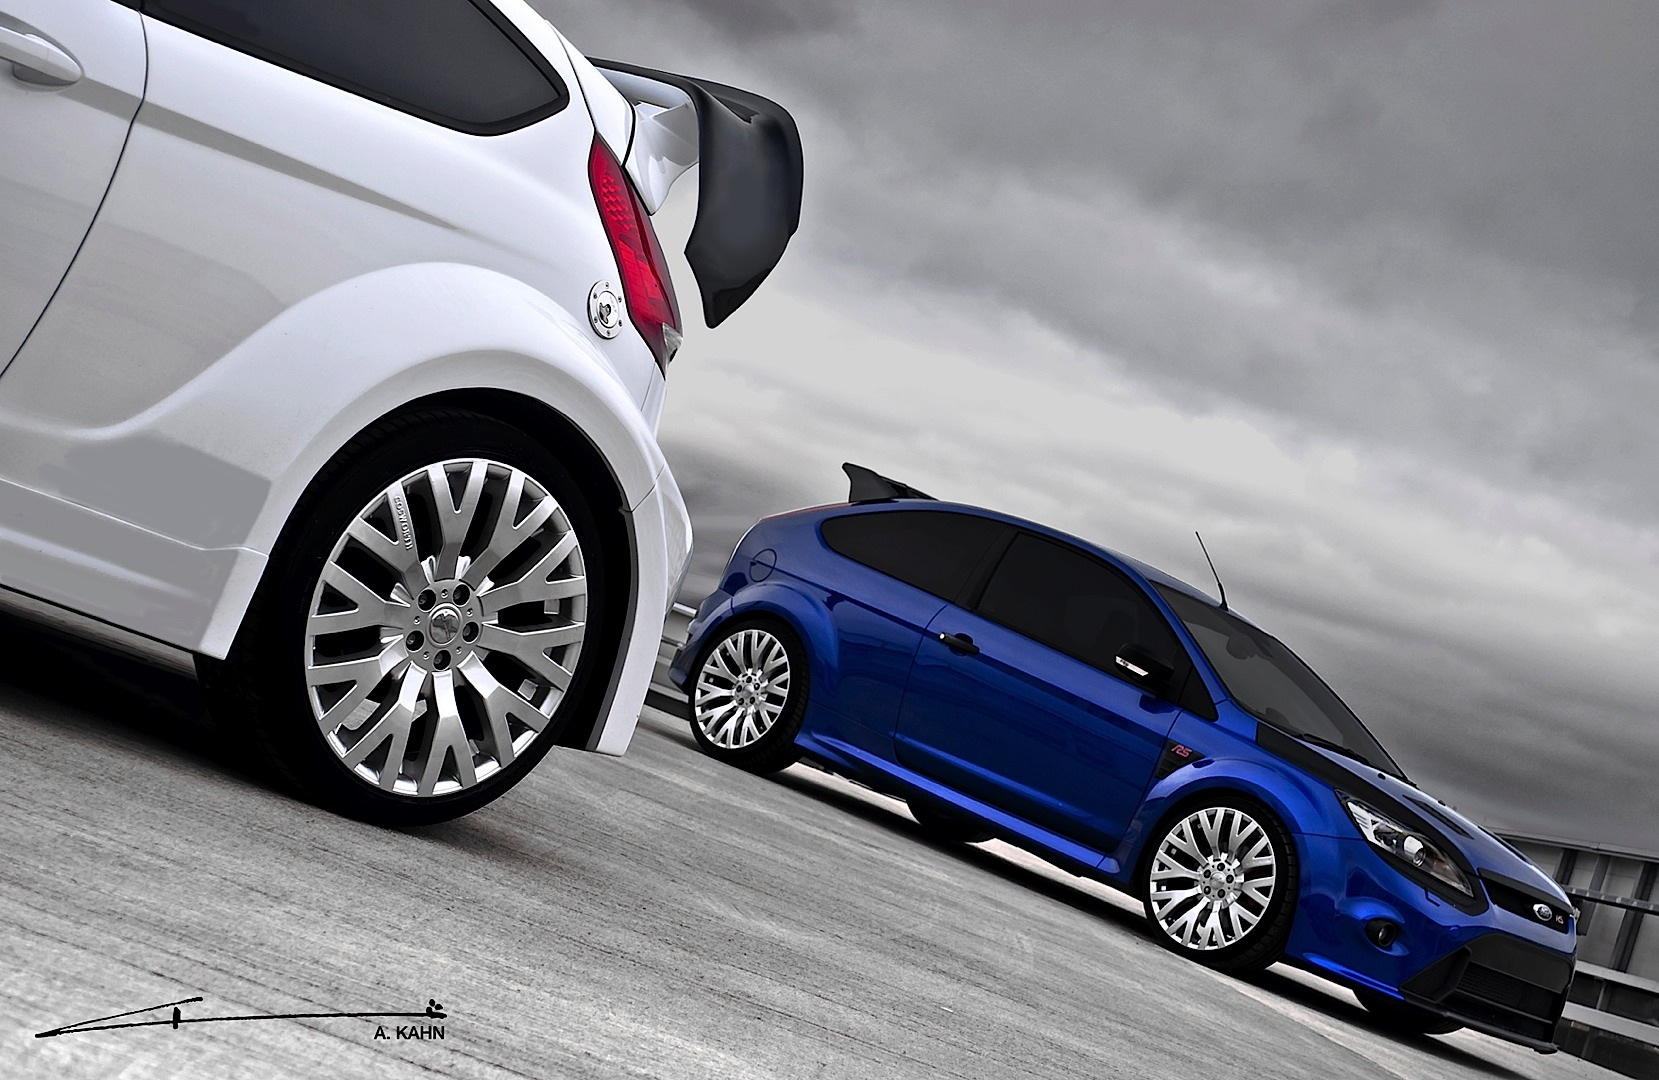 Kahn Ford Focus Rs And Fiesta St With Cosworth Wheels